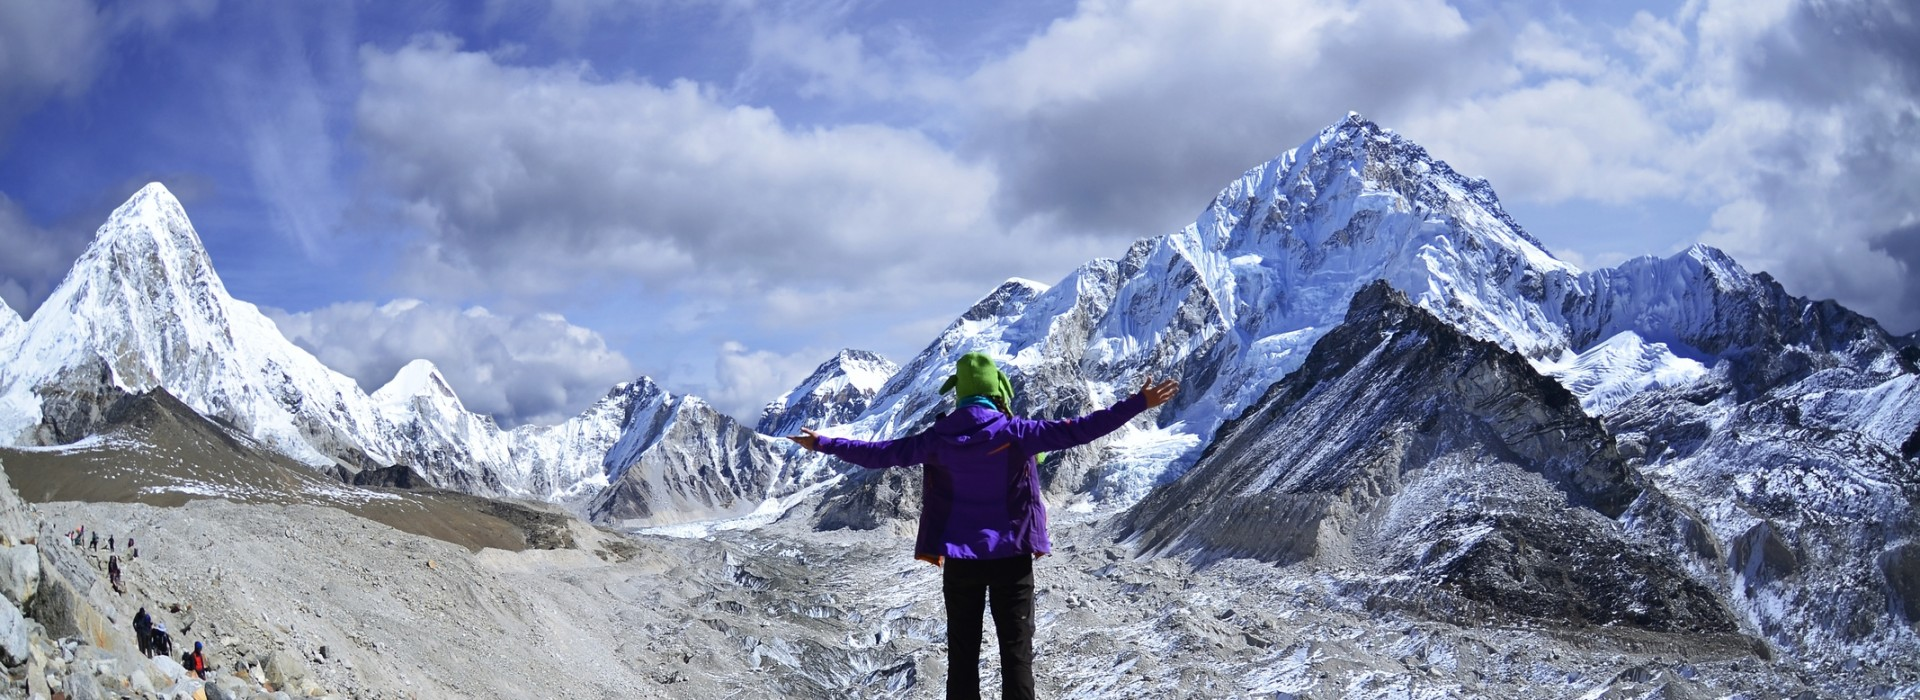 Young woman trekking in the Everest region of Nepal